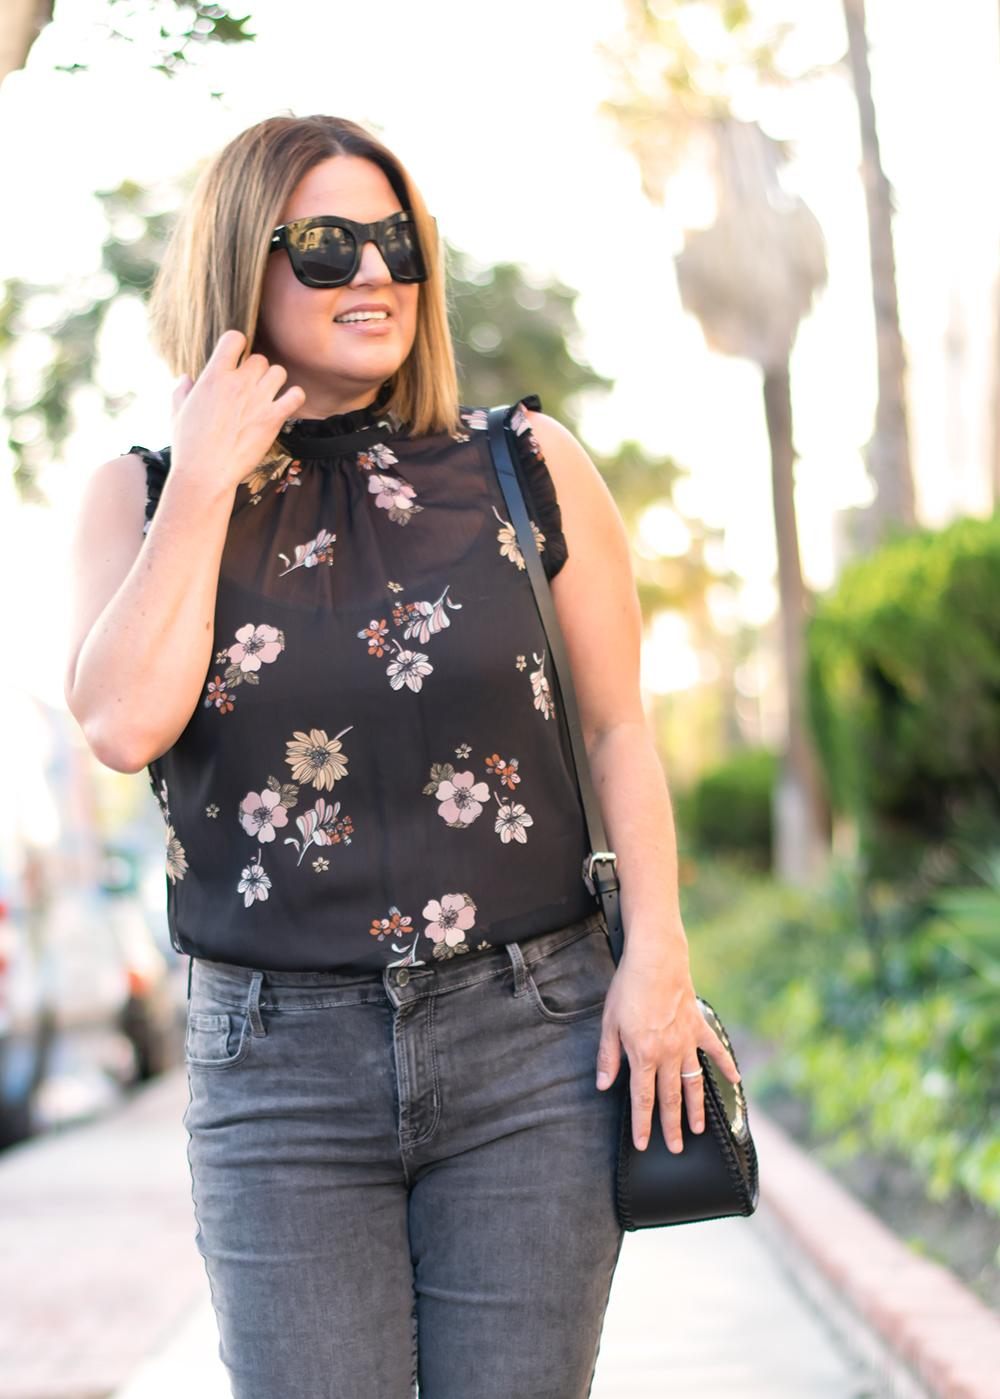 barefoot-in-la-casual-outfit-los-angeles-fashion-street-style-blogger-personal-stylist-0638